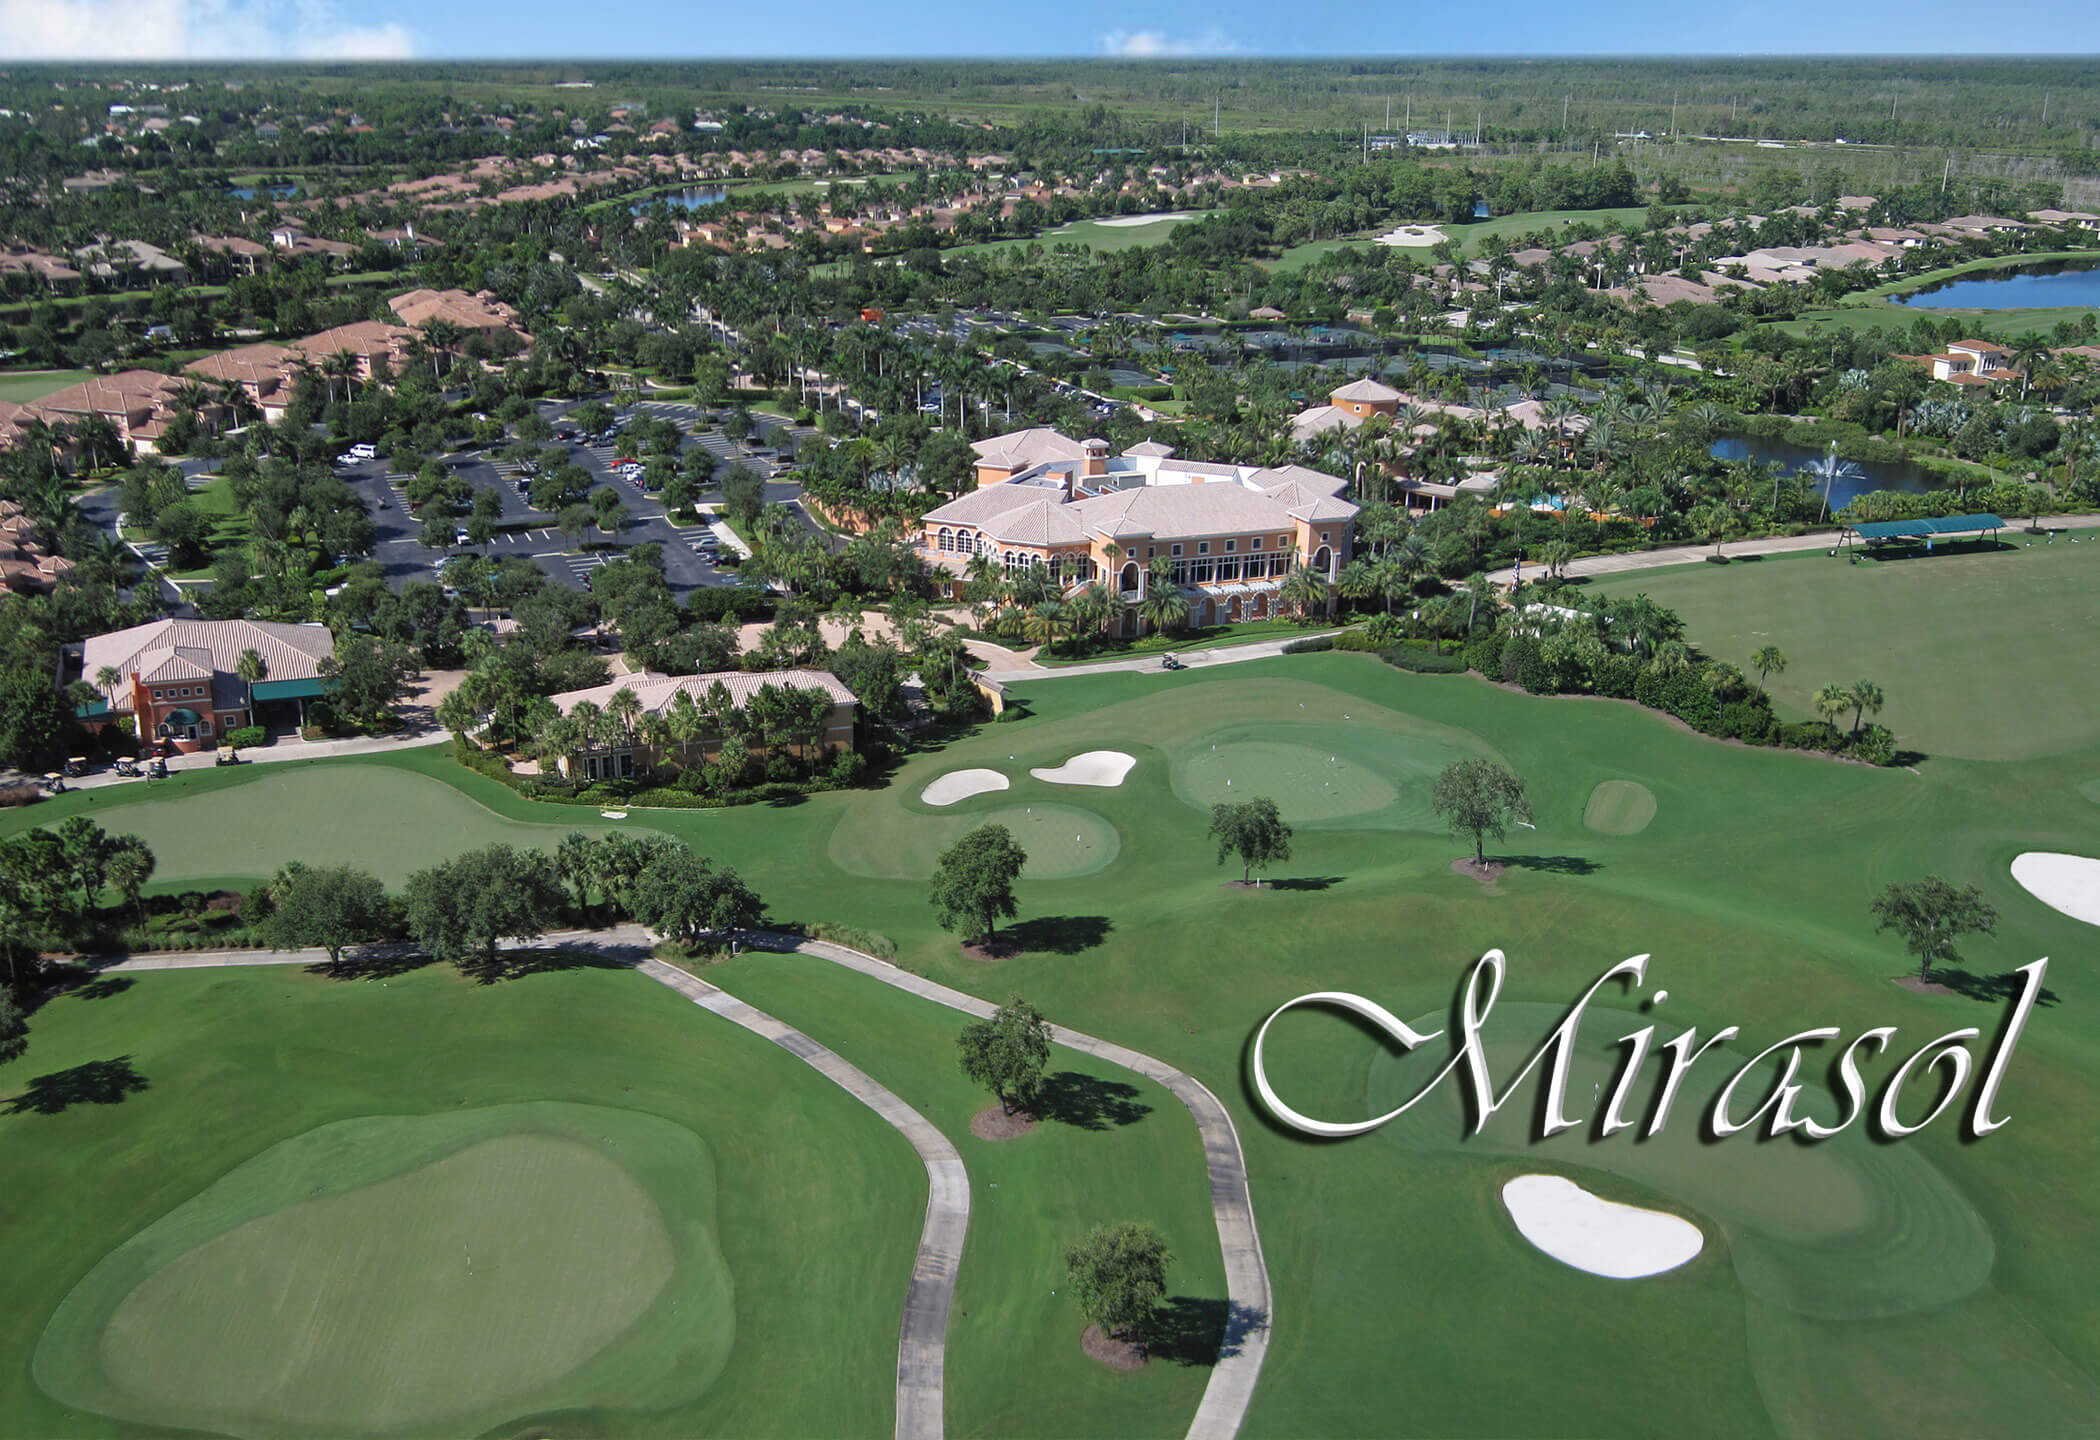 Mirasol Country Club Homes for Sale & Real Estate